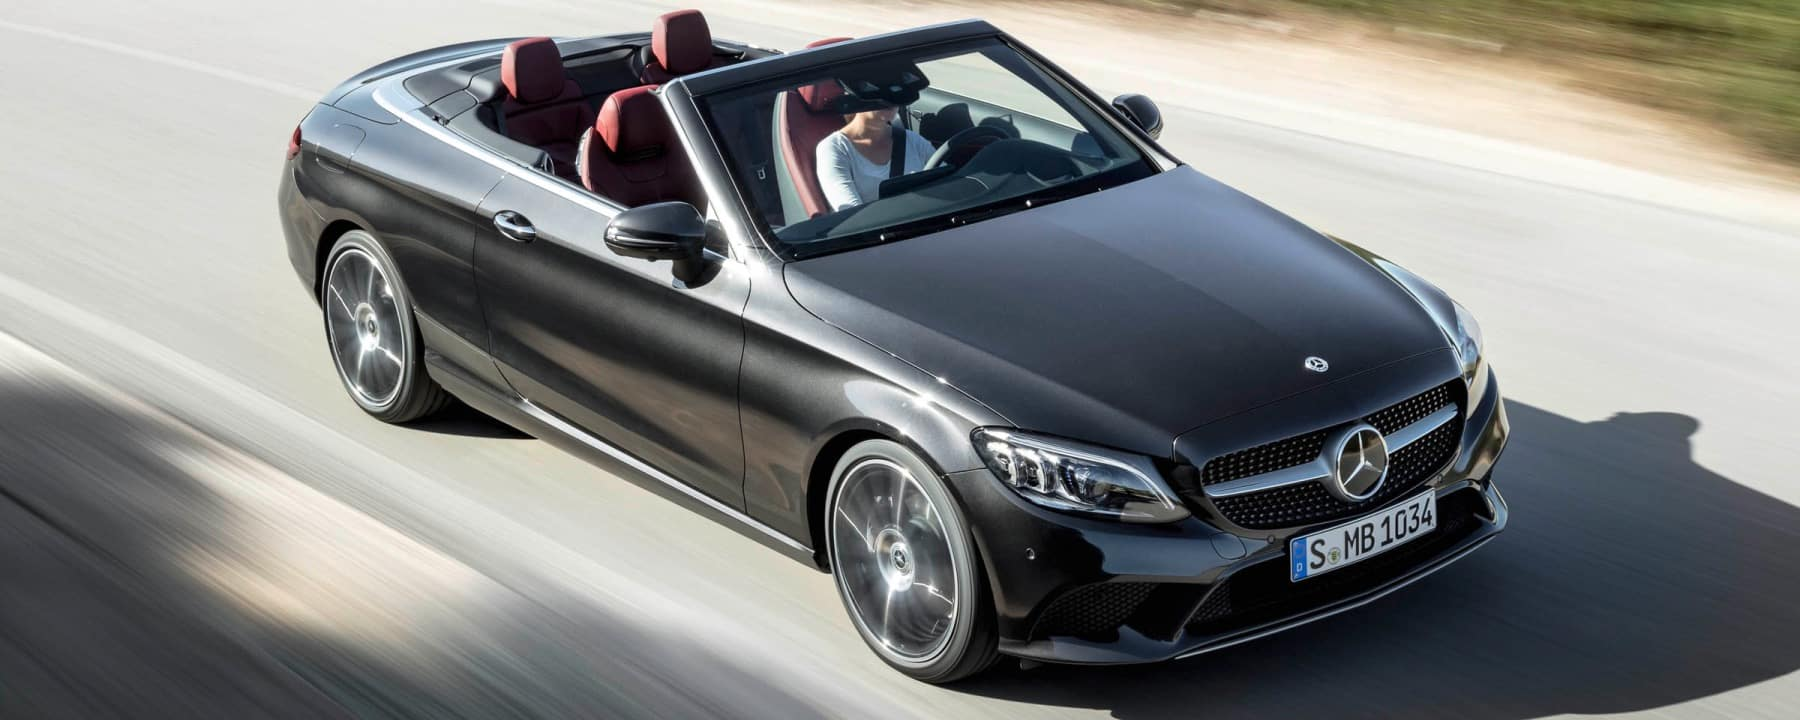 The new mercedes benz c class models mercedes benz of for Mercedes benz cpo special offers